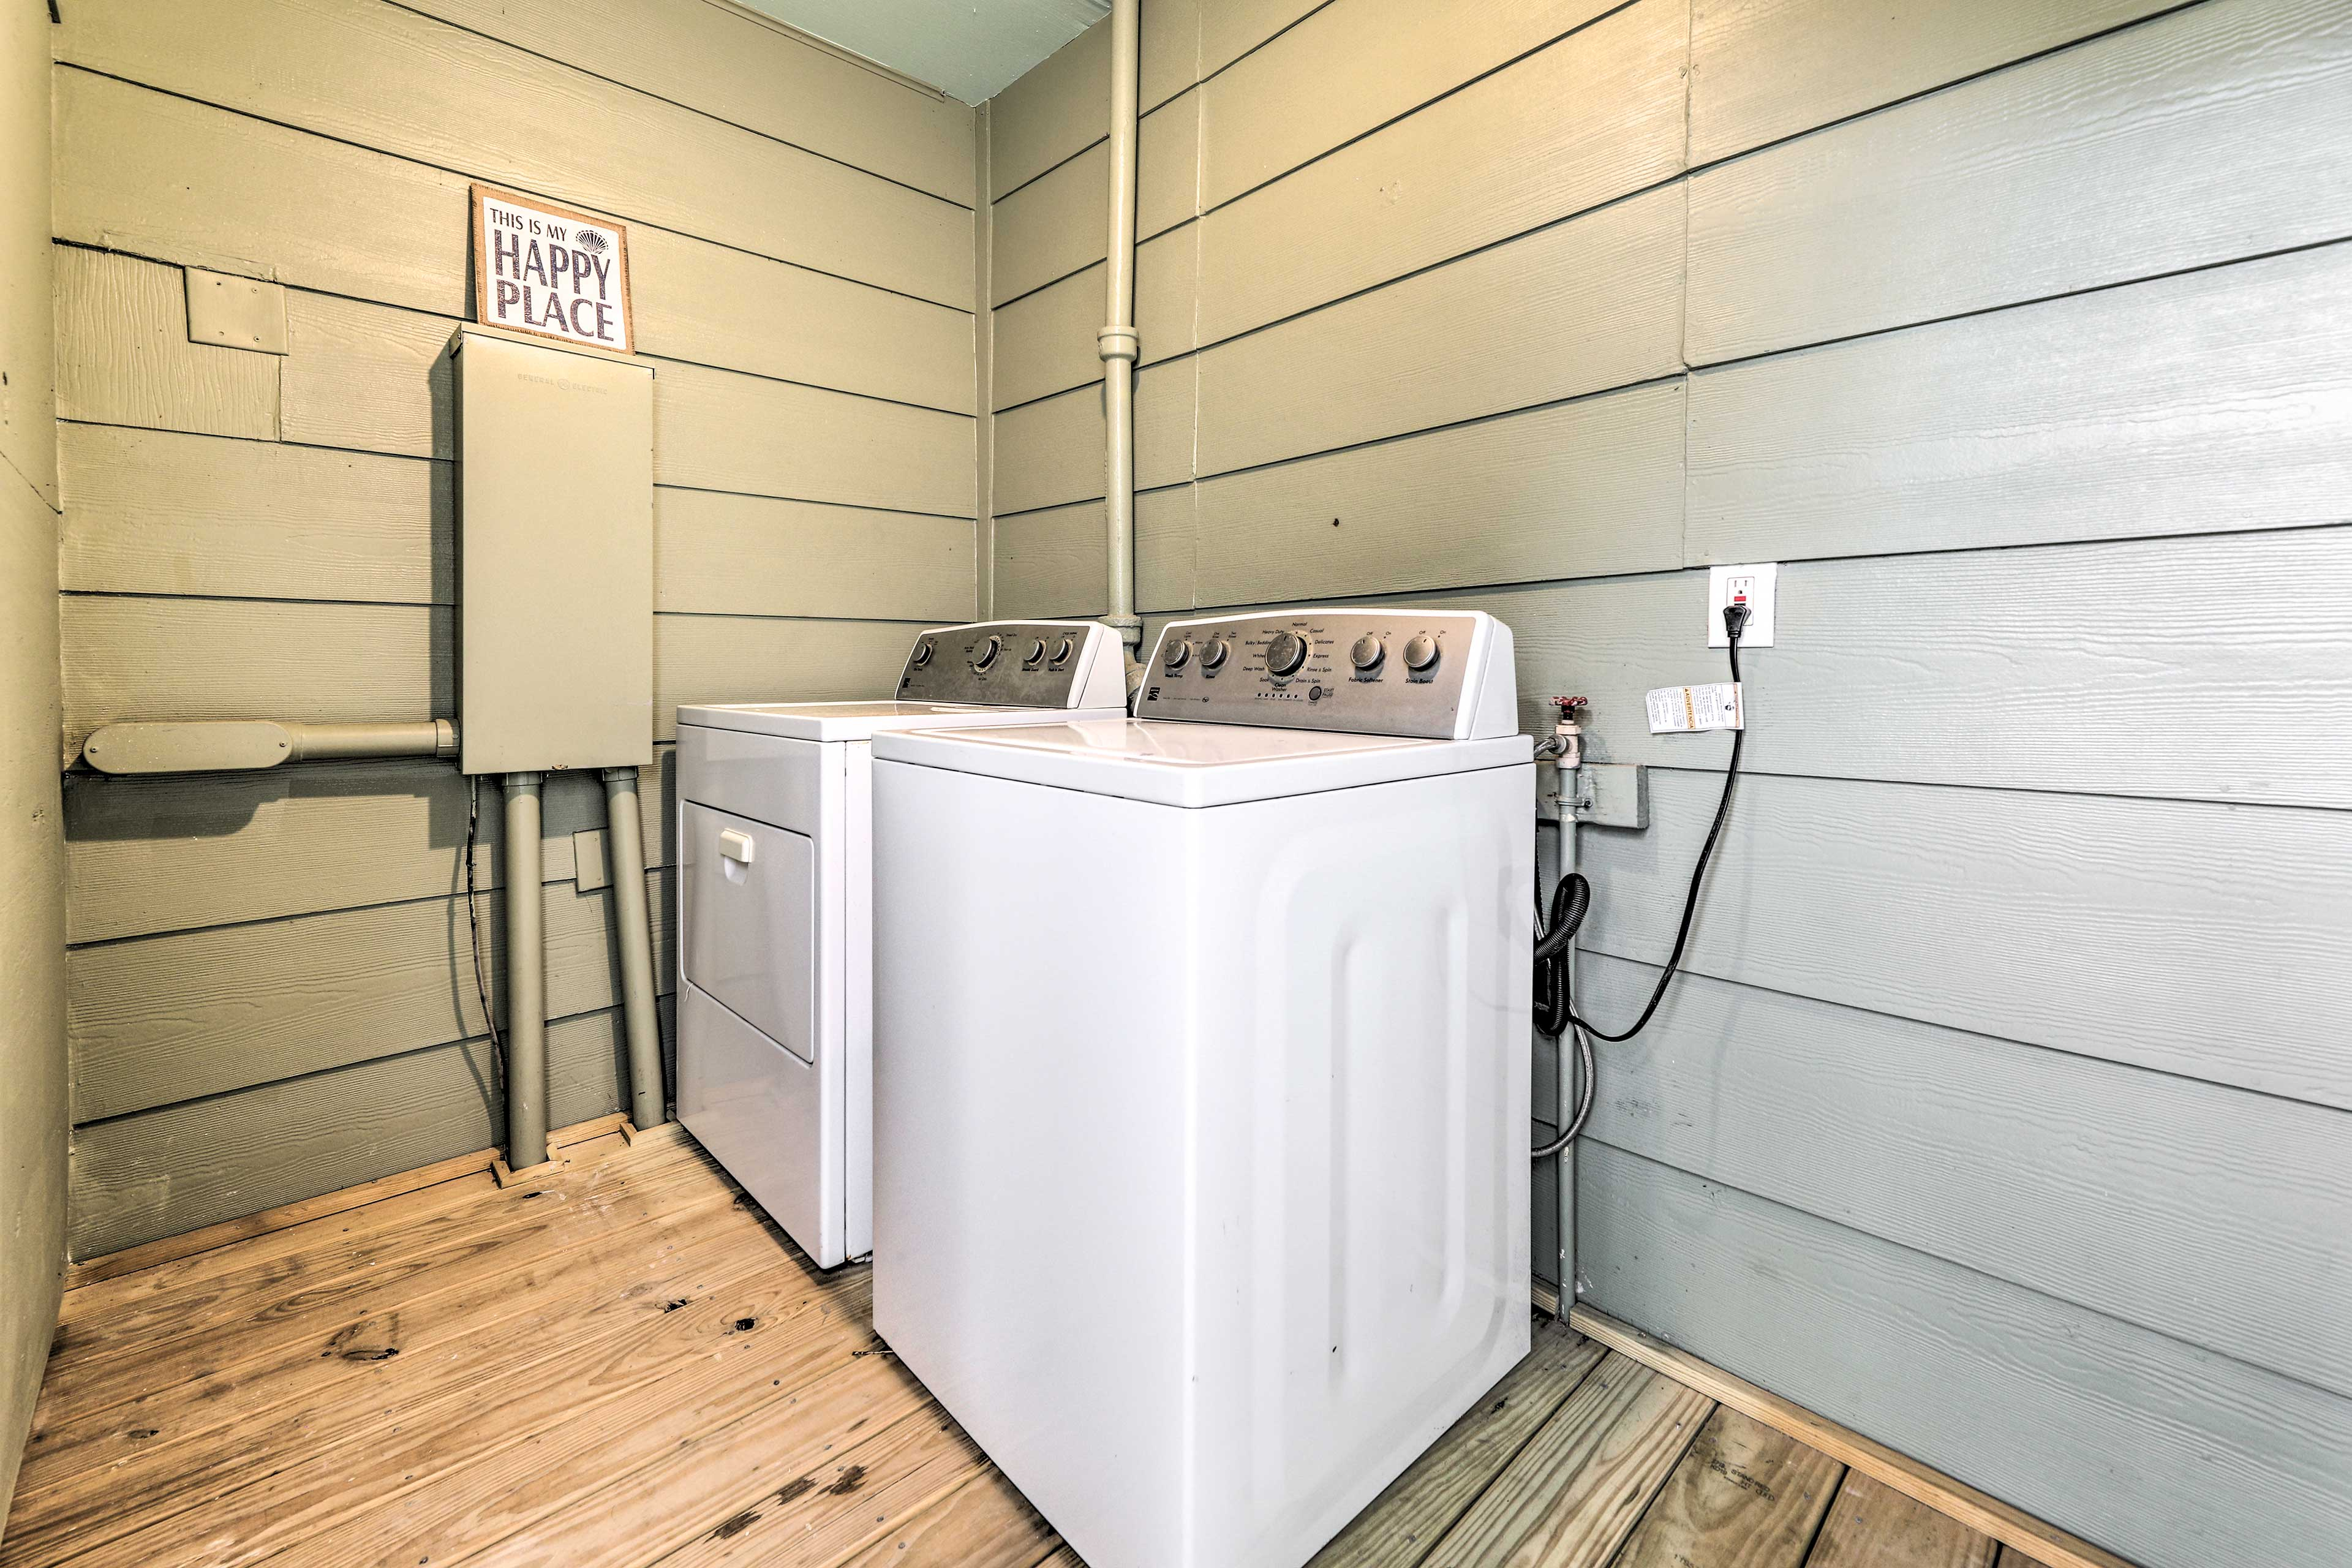 A washer and dryer add a convenient touch.